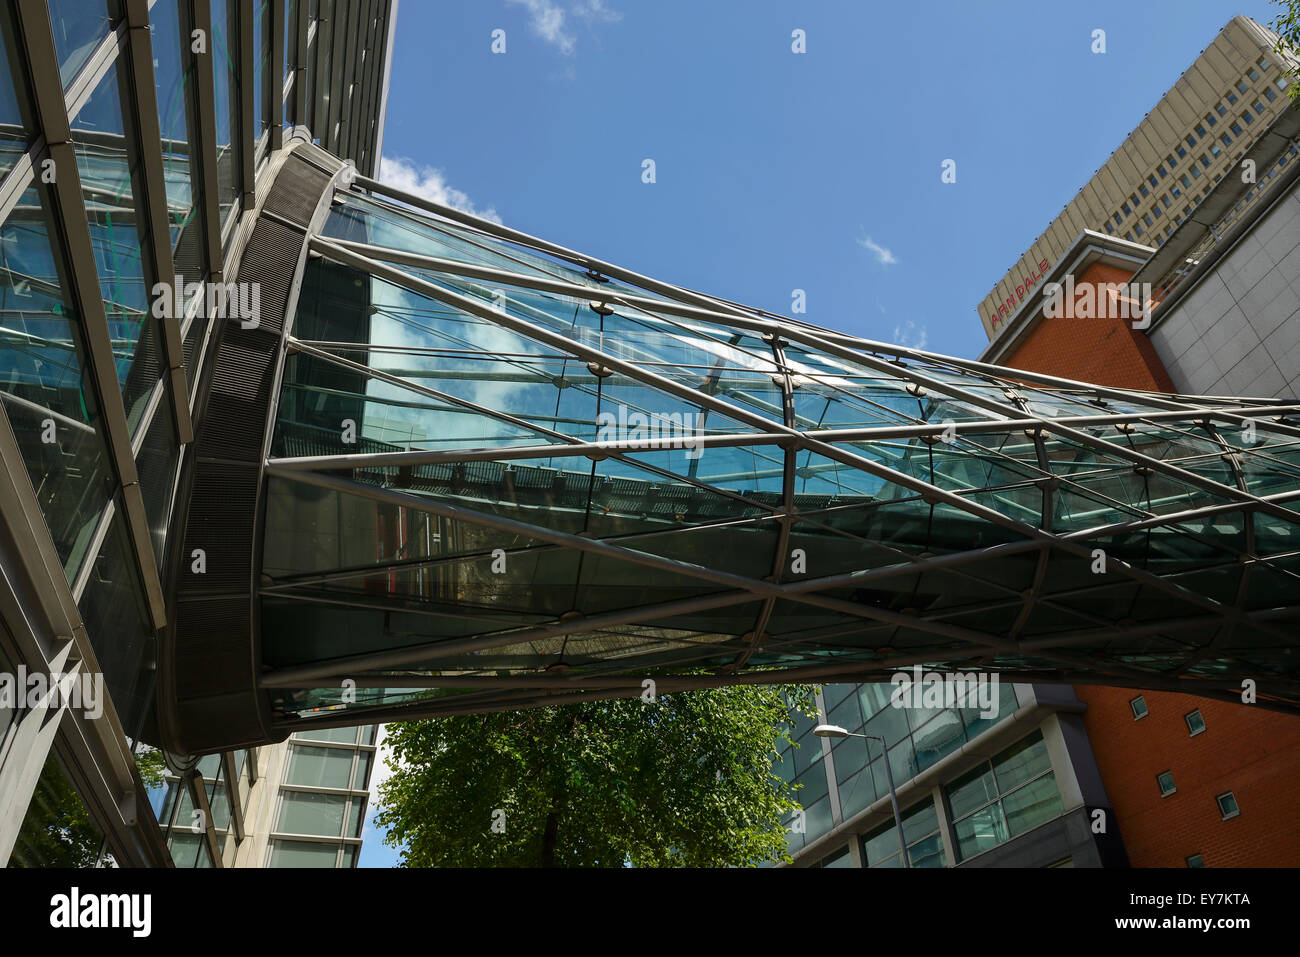 The glass footbridge over Corporation Street in Manchester that connects the Arndale shopping precinct to Marks - Stock Image